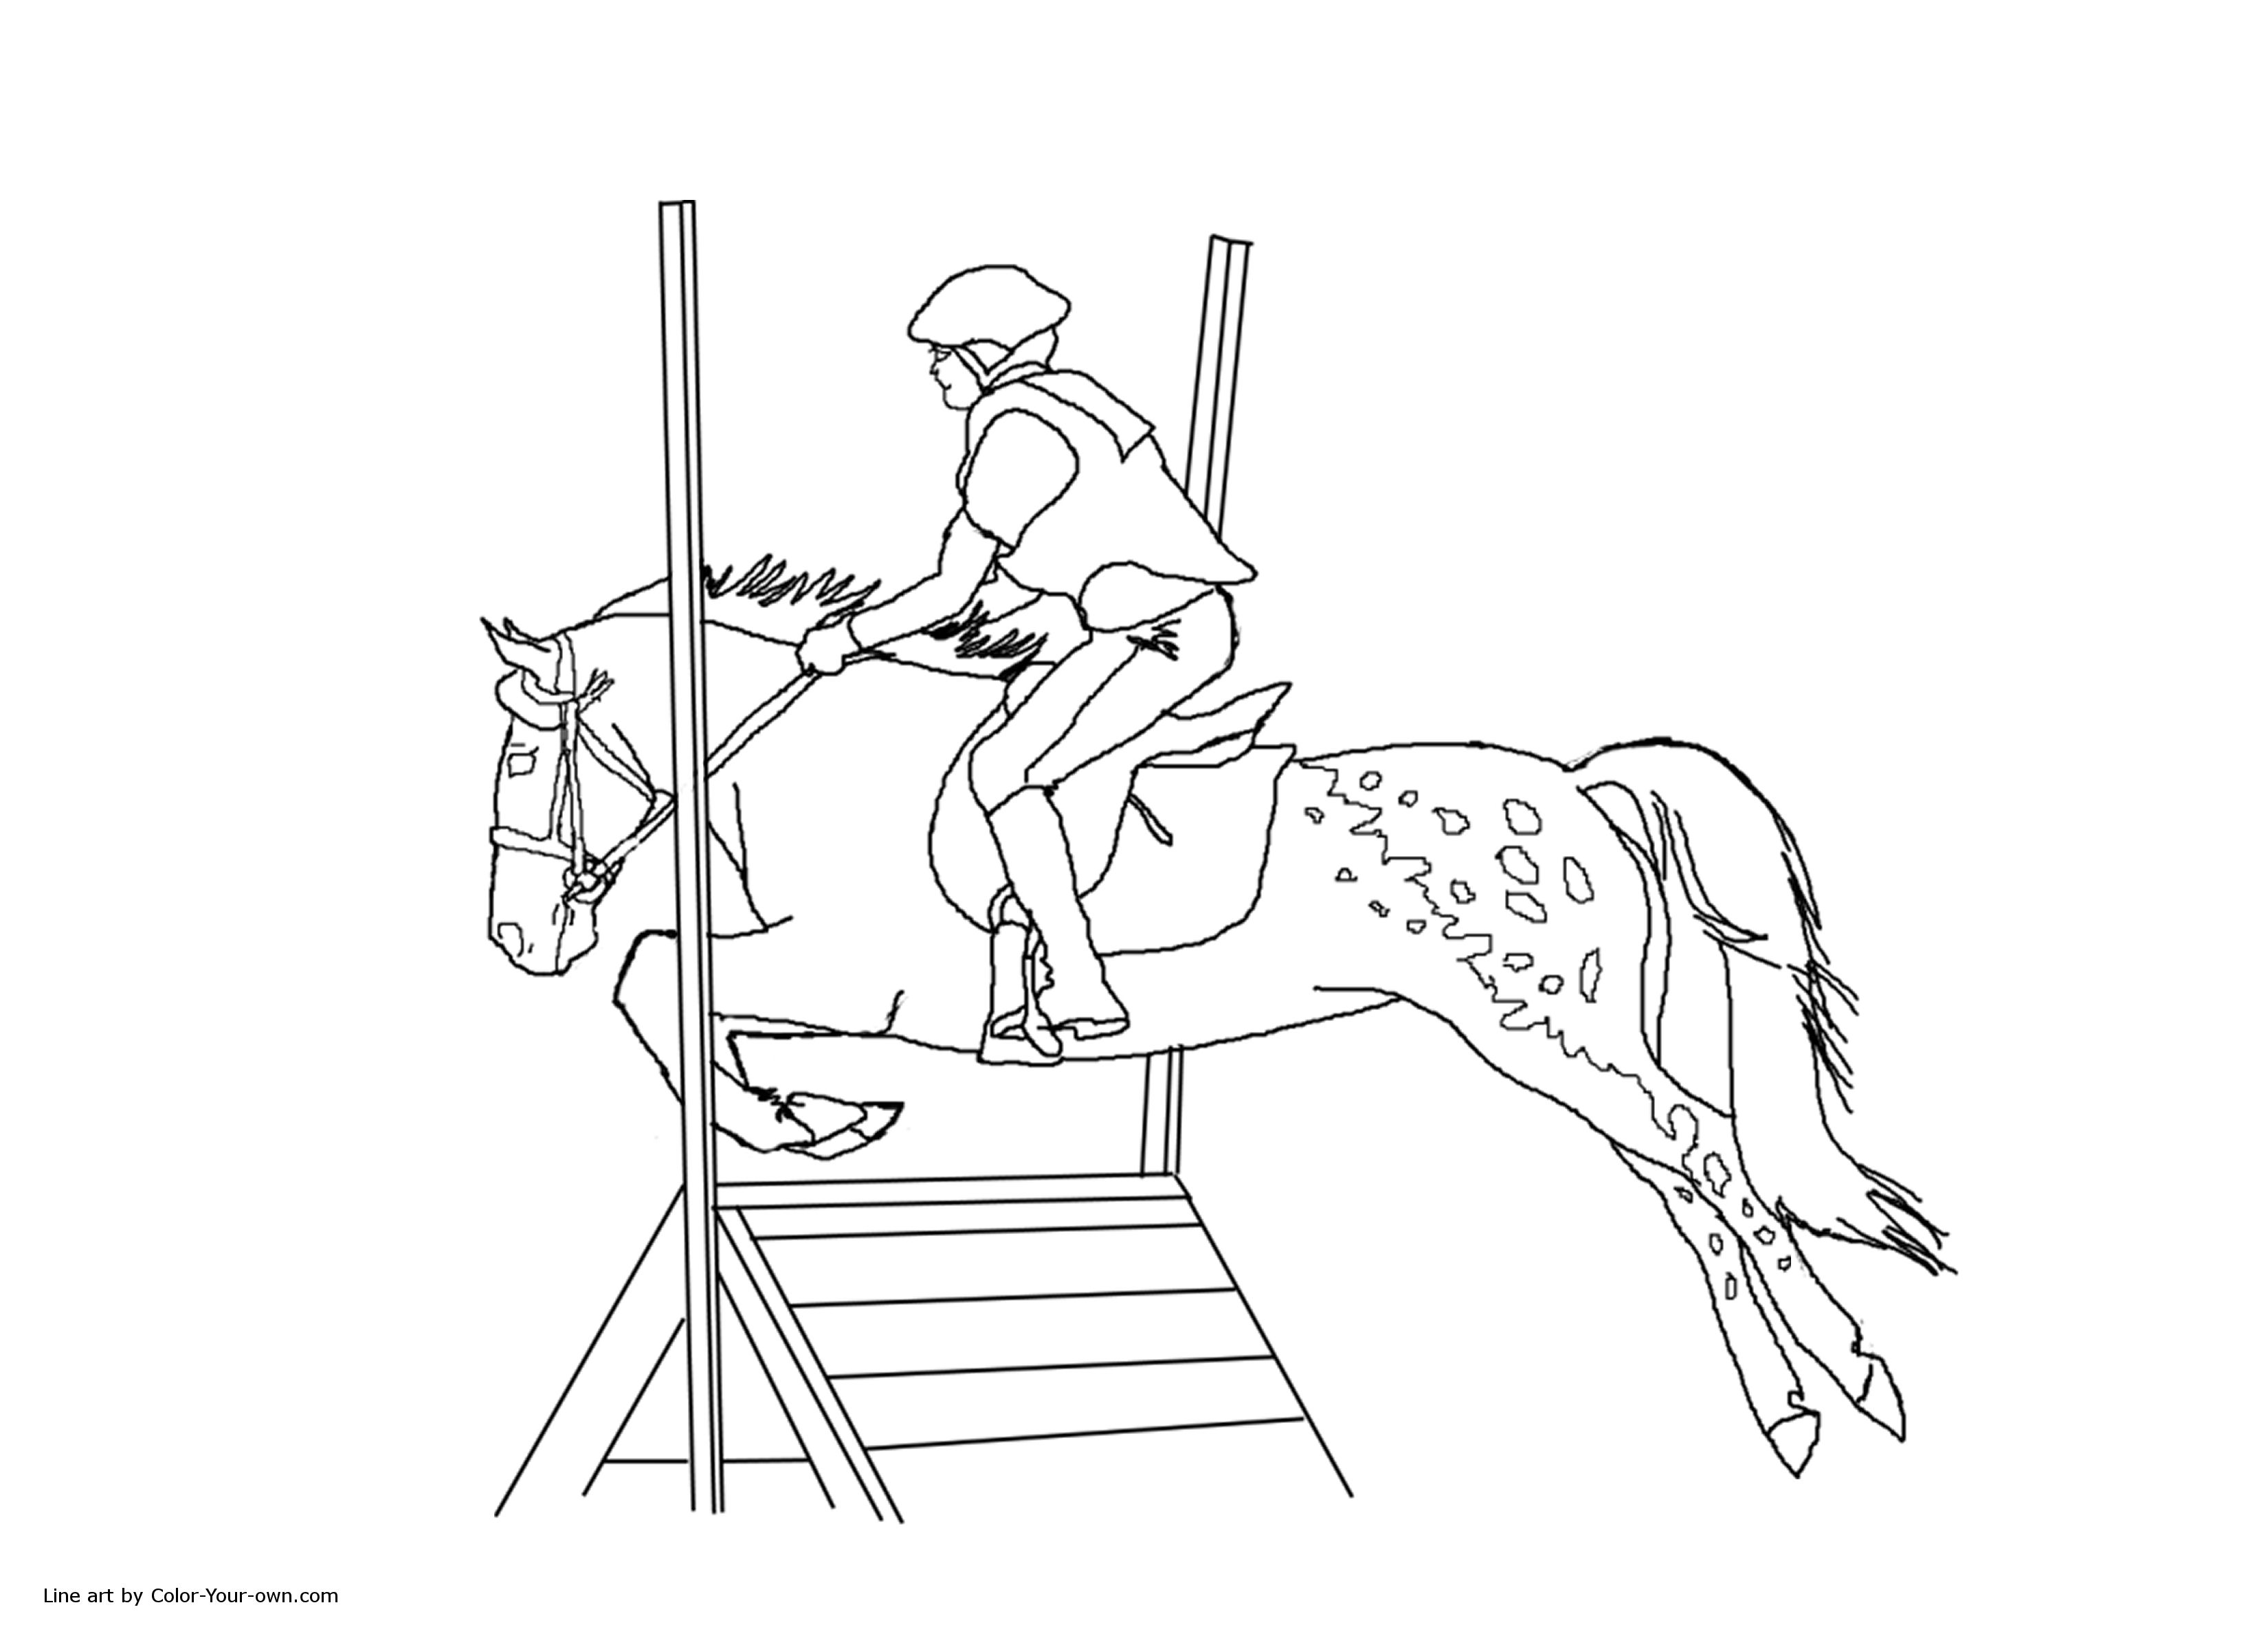 Appaloosa Horse Coloring Pages At Getdrawings Com Free For